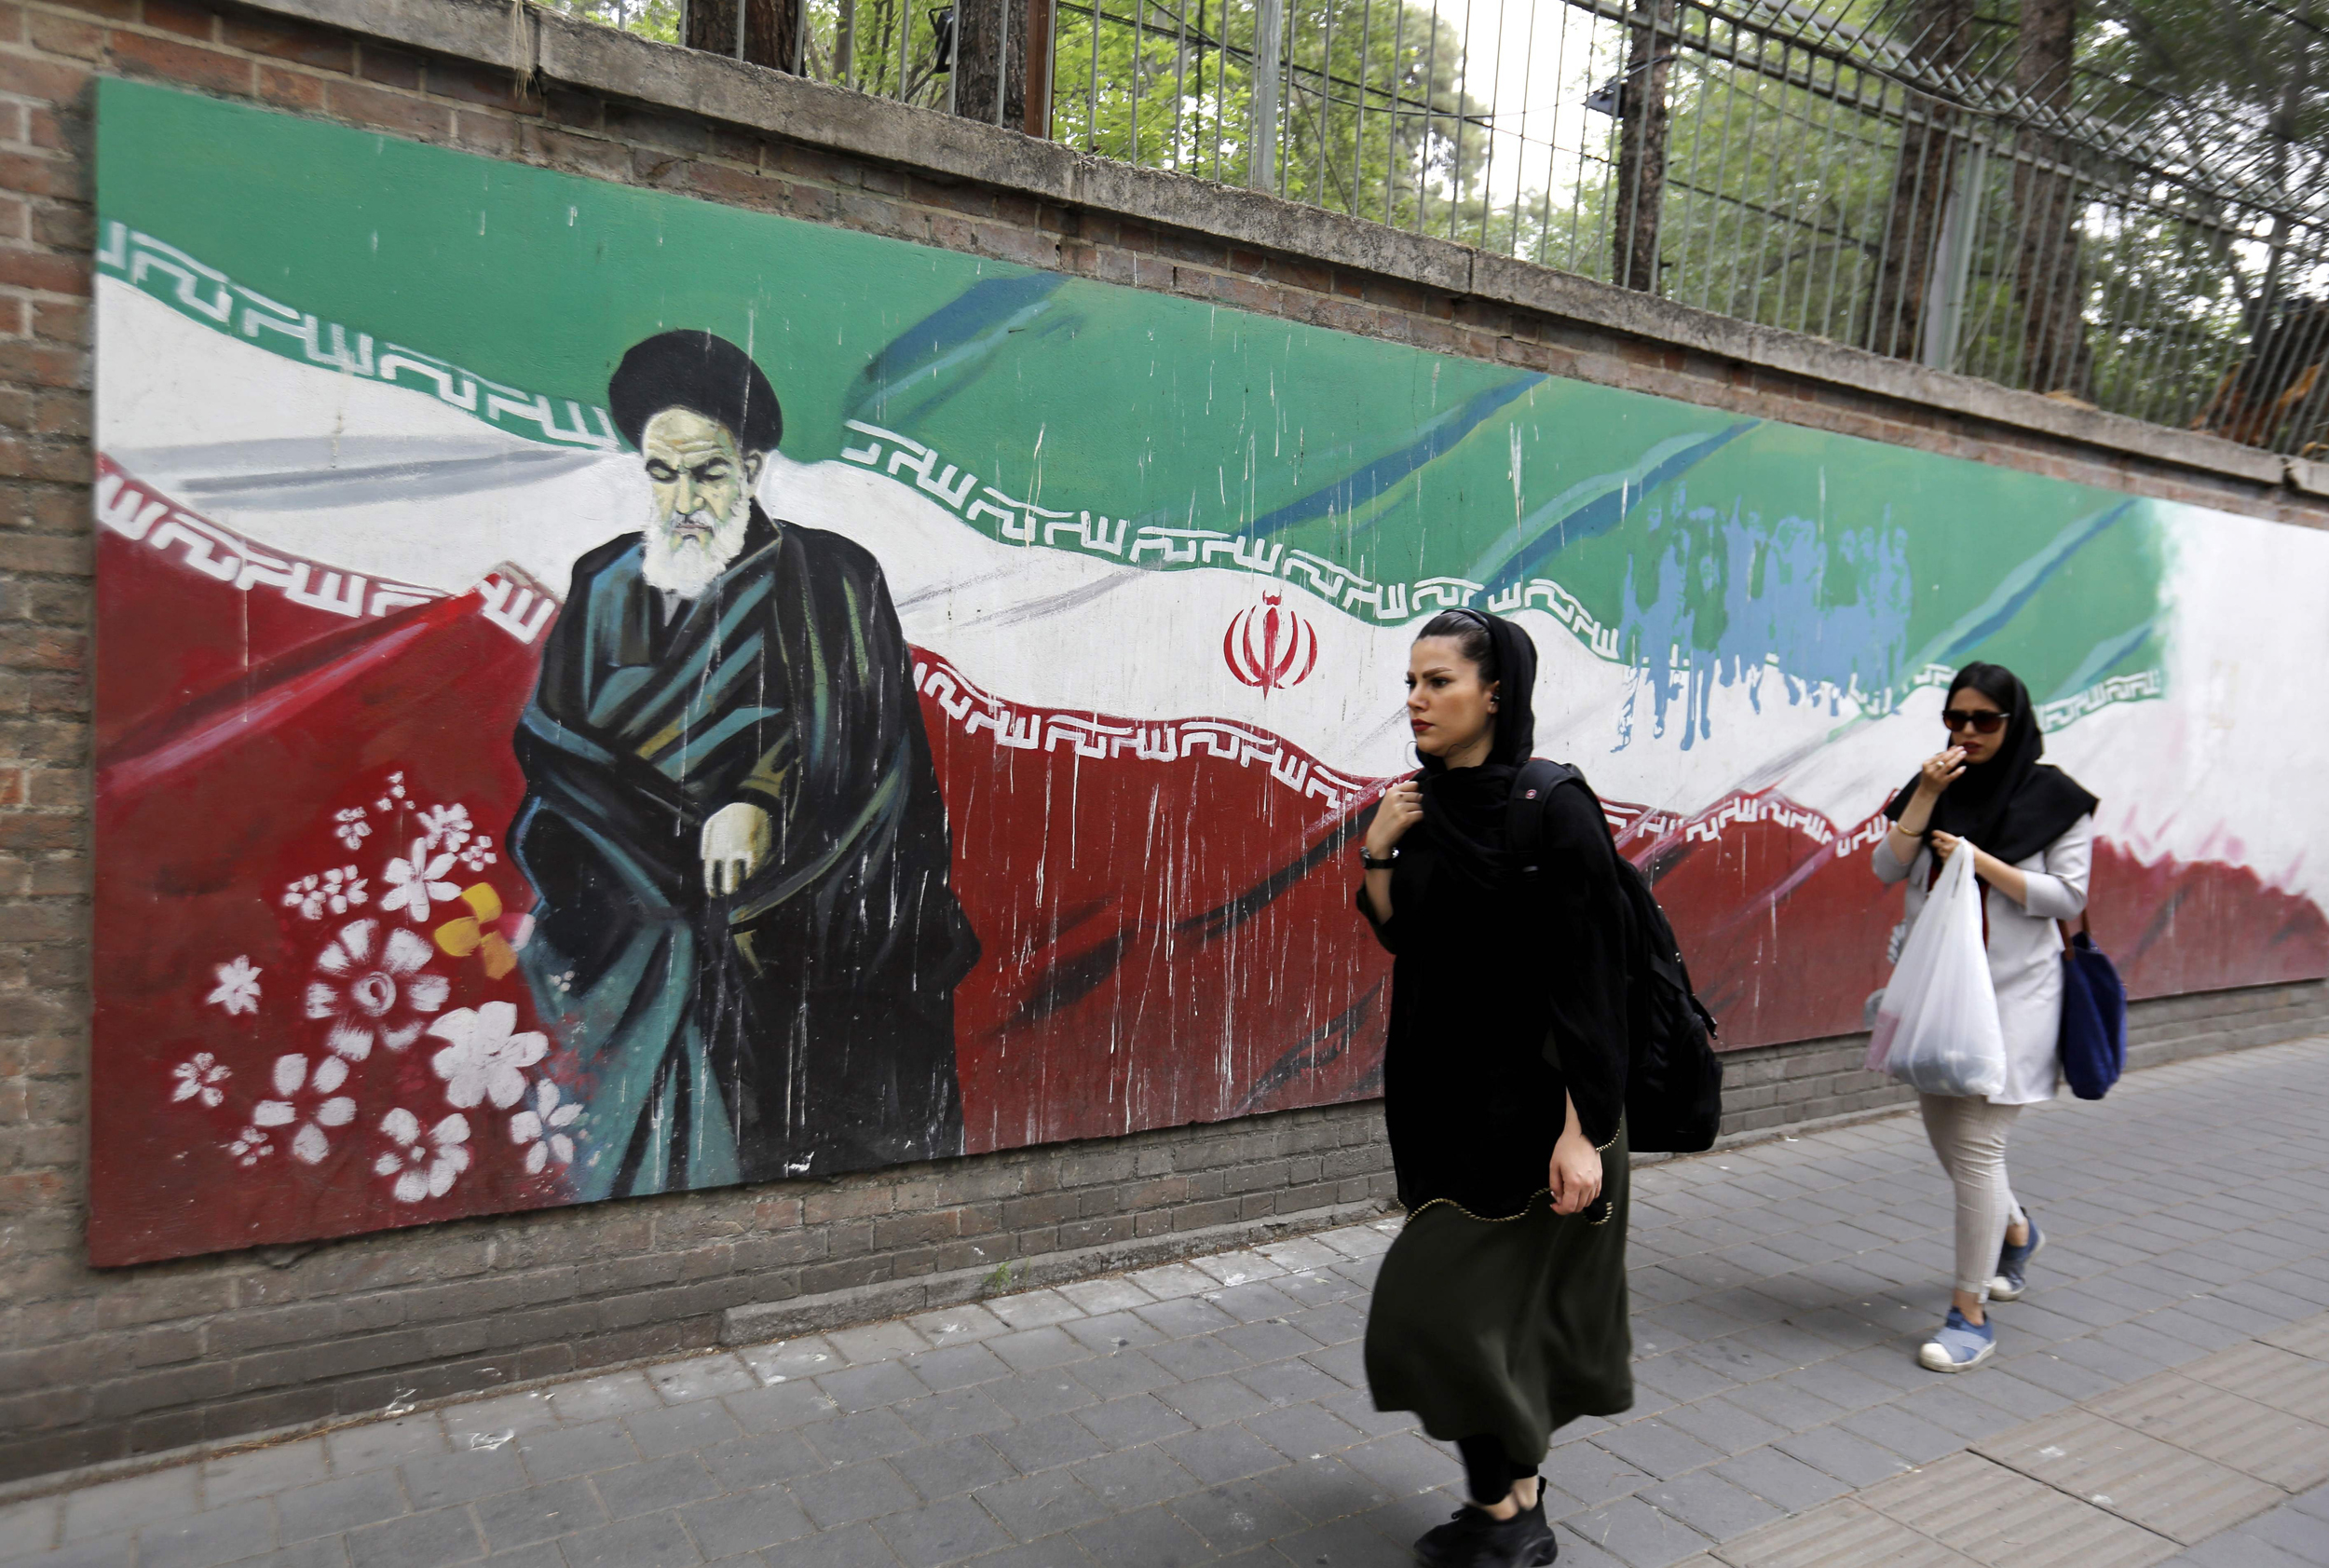 U.S. refuses European requests for exemptions from new Iran sanctions